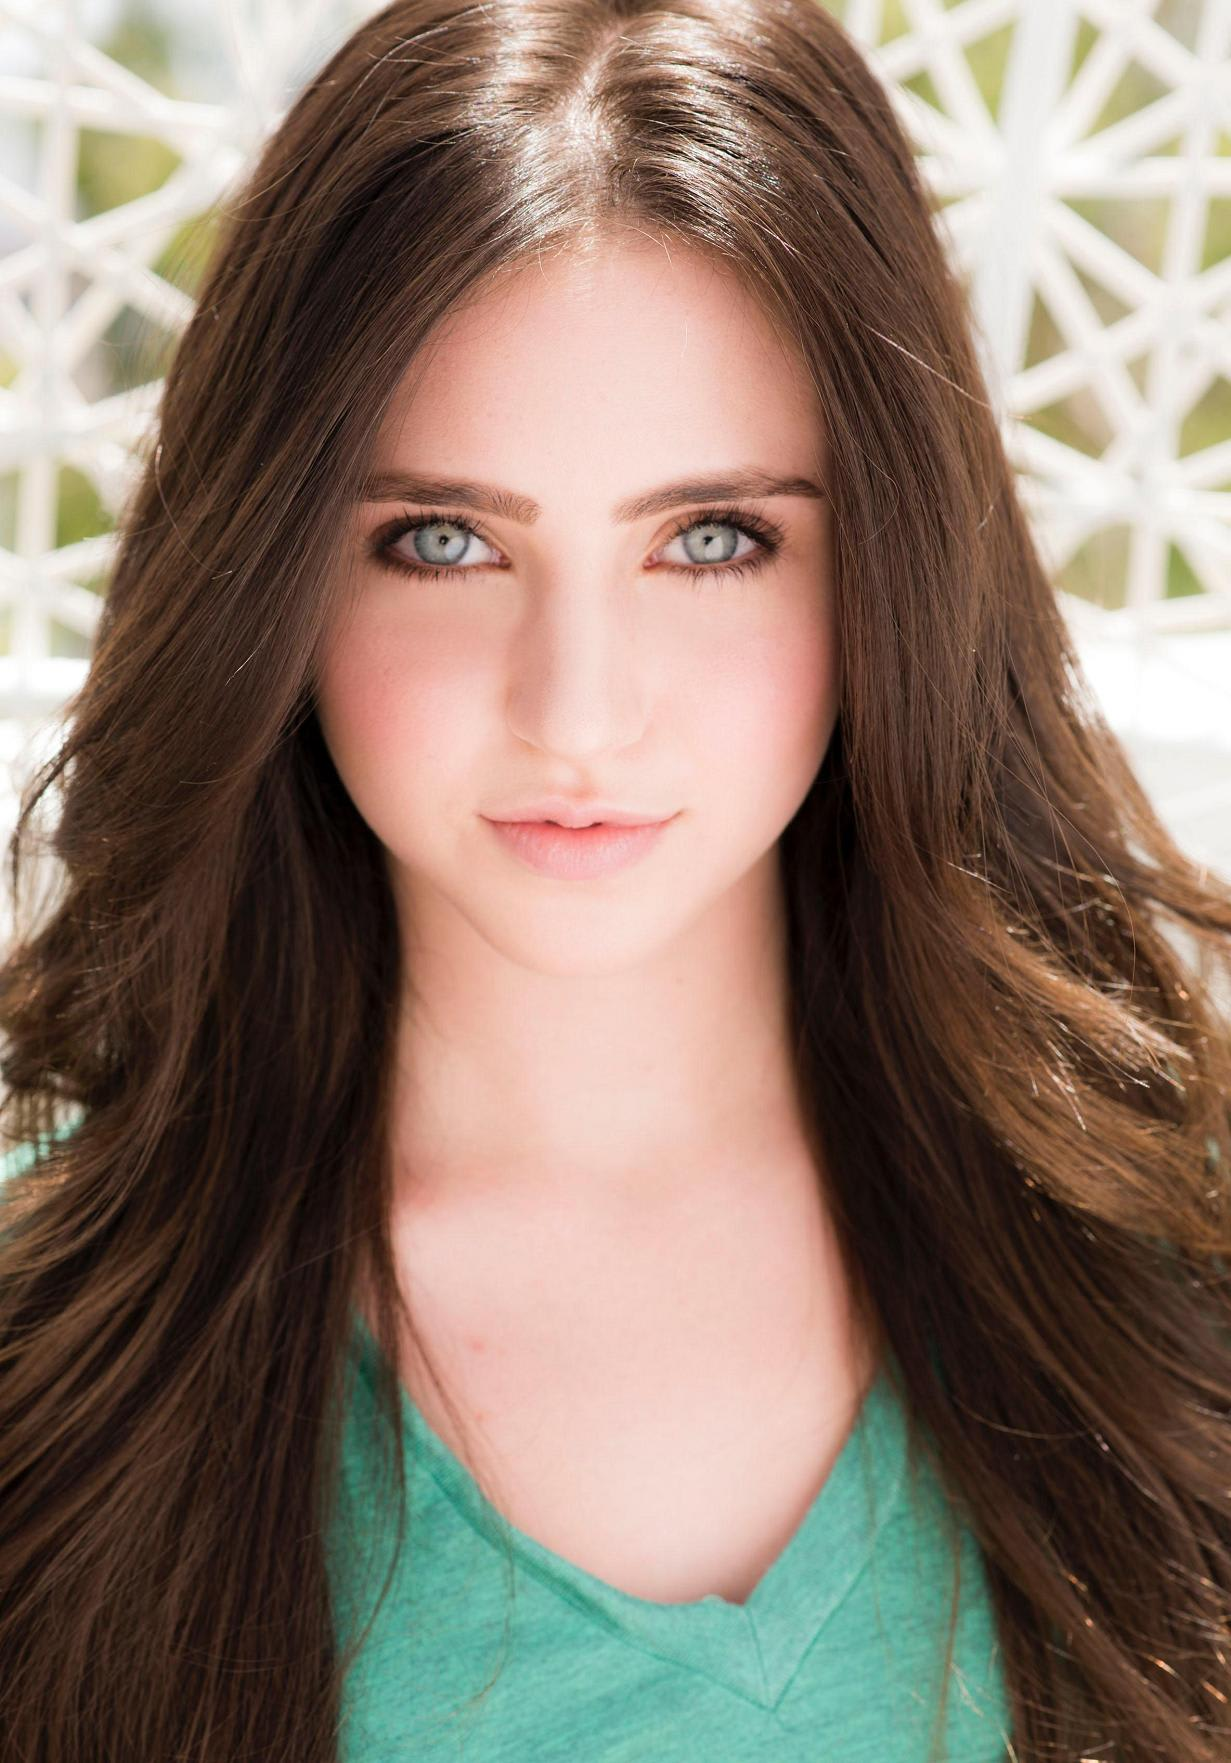 Ryan Newman Has Blue Eyes | Everyone Loves To Star Gaze